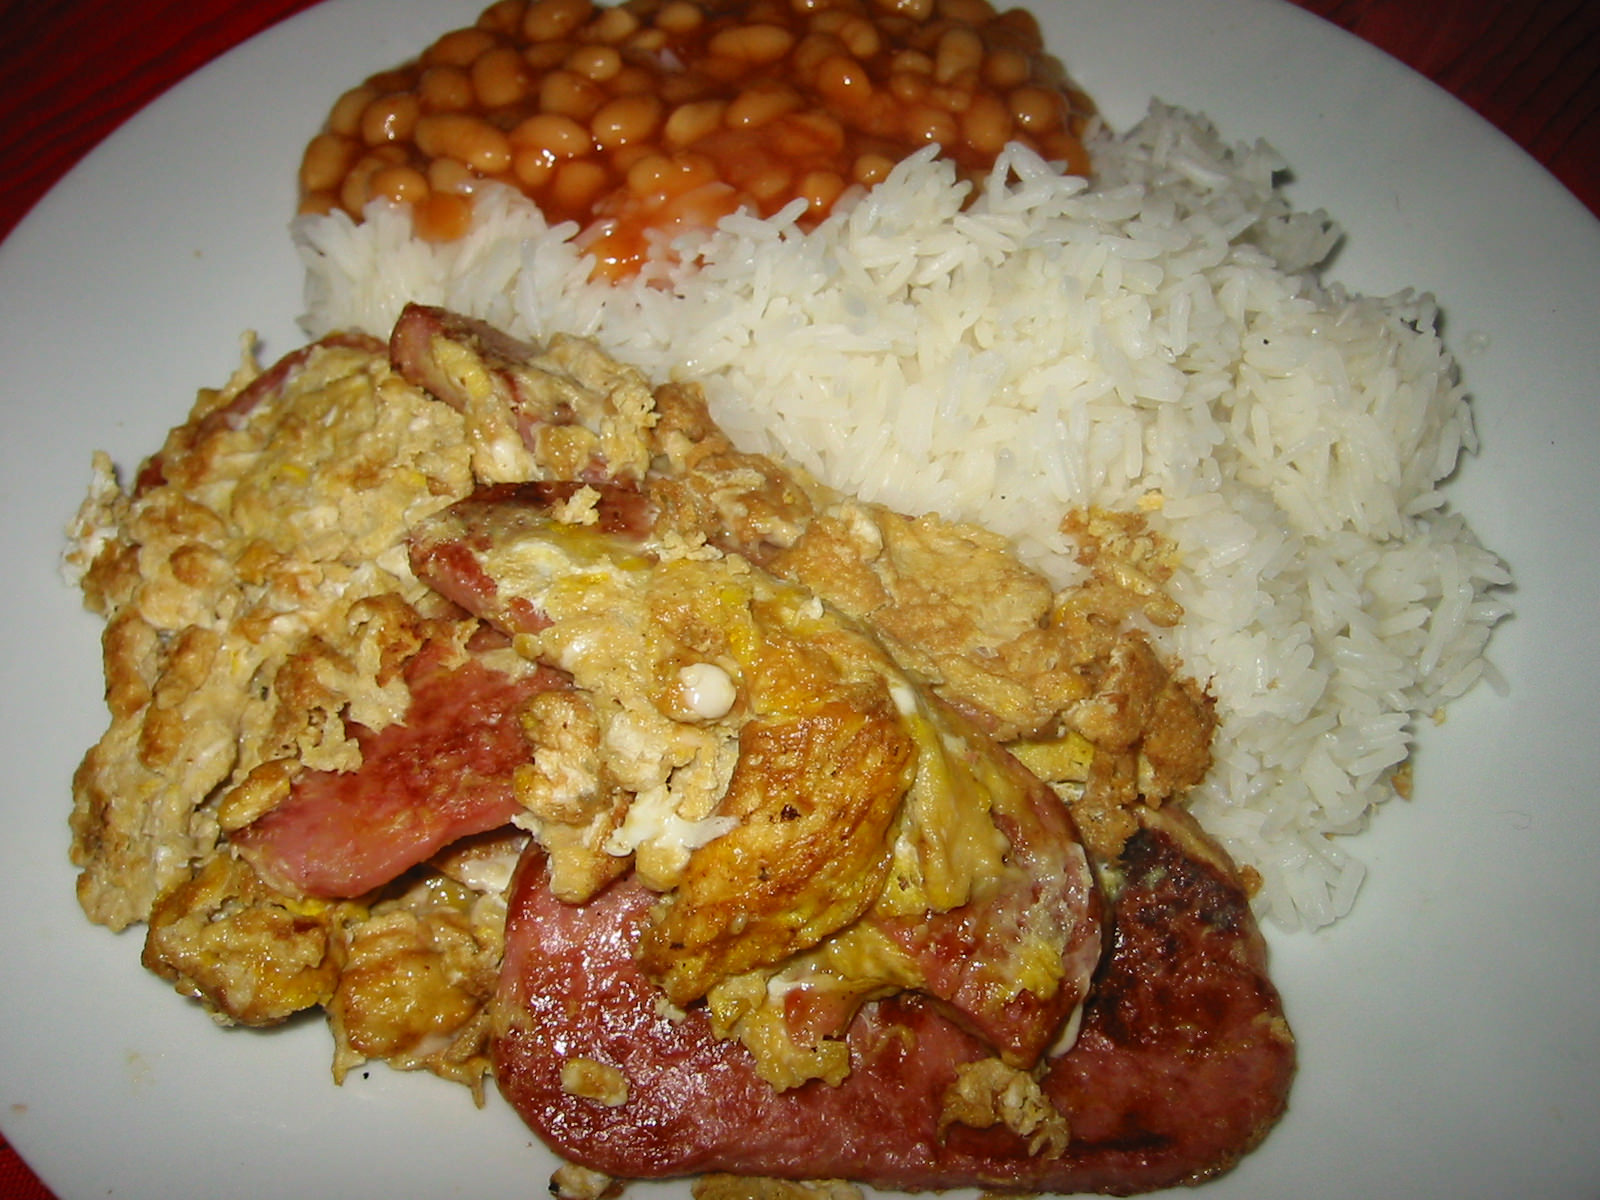 SPAM and egg, rice and baked beans